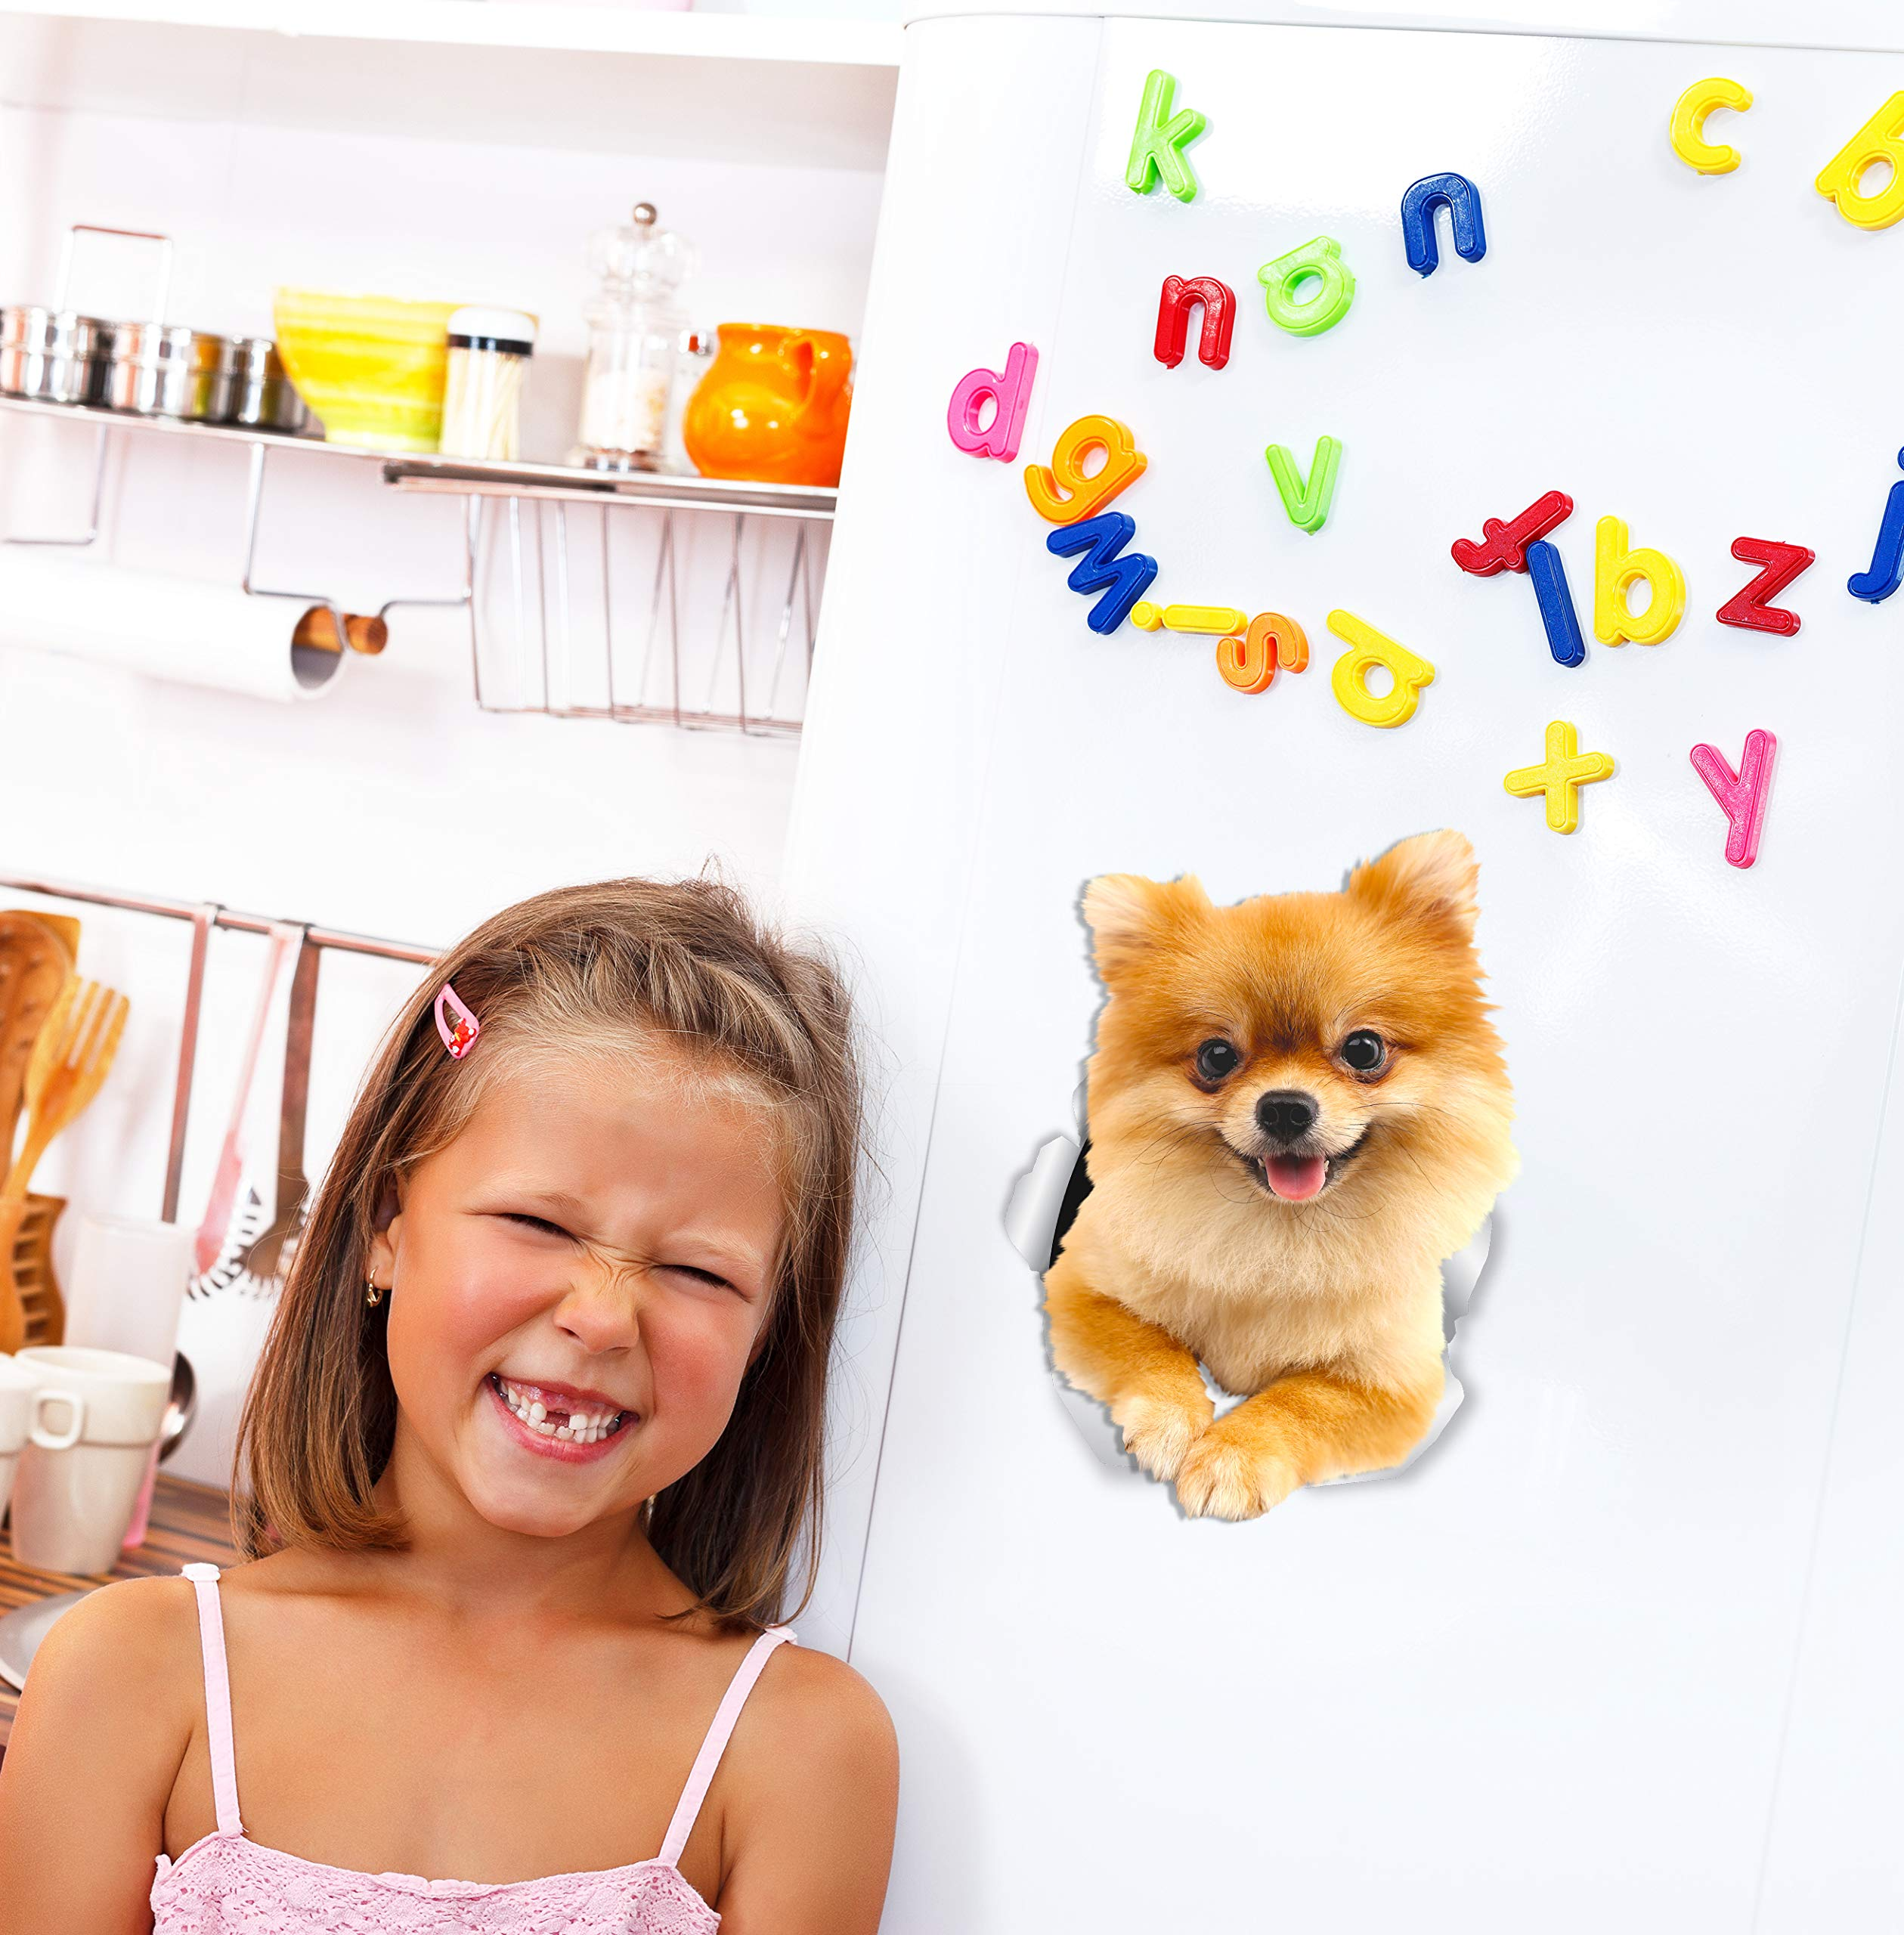 Winston & Bear Cute Pomeranian Dog Wall Decals - 2 Pack - German Spitz Dog Toilet Sticker – 3D Dog Car Window and Bumper Sticker - Retail Packaged Pomeranian Lover Gifts 2